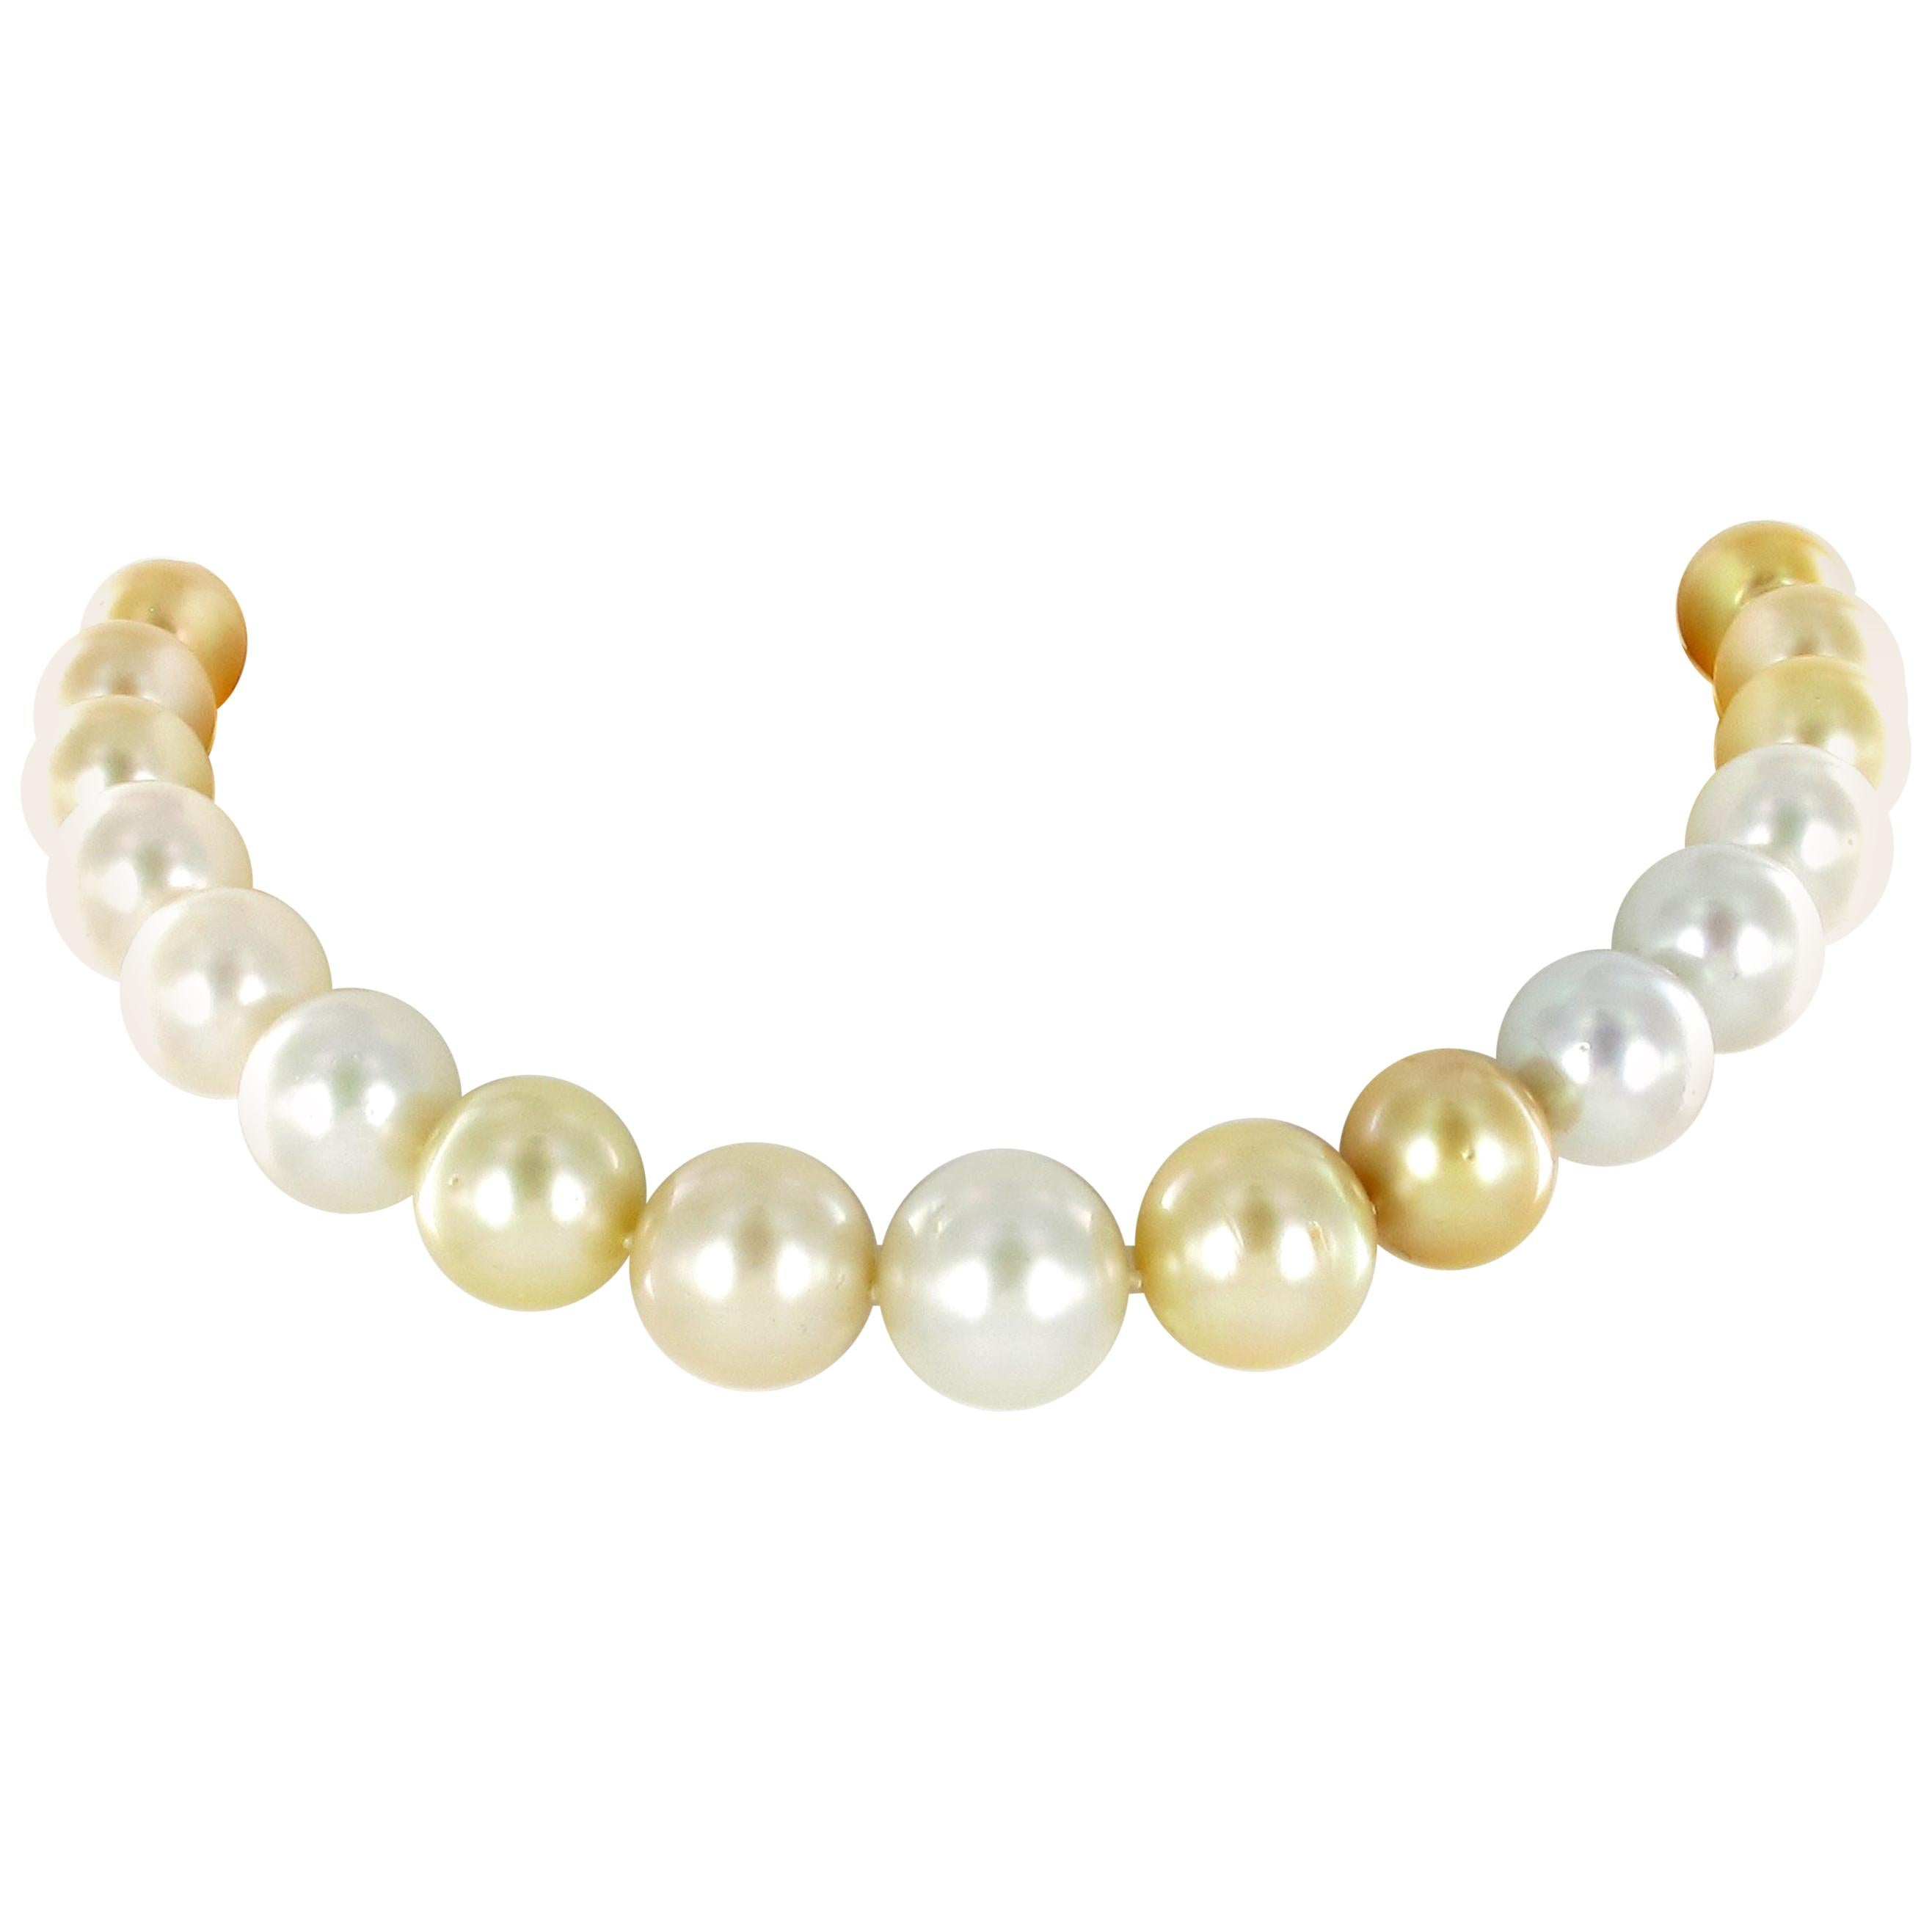 White and Golden South Sea Cultured Pearl Necklace